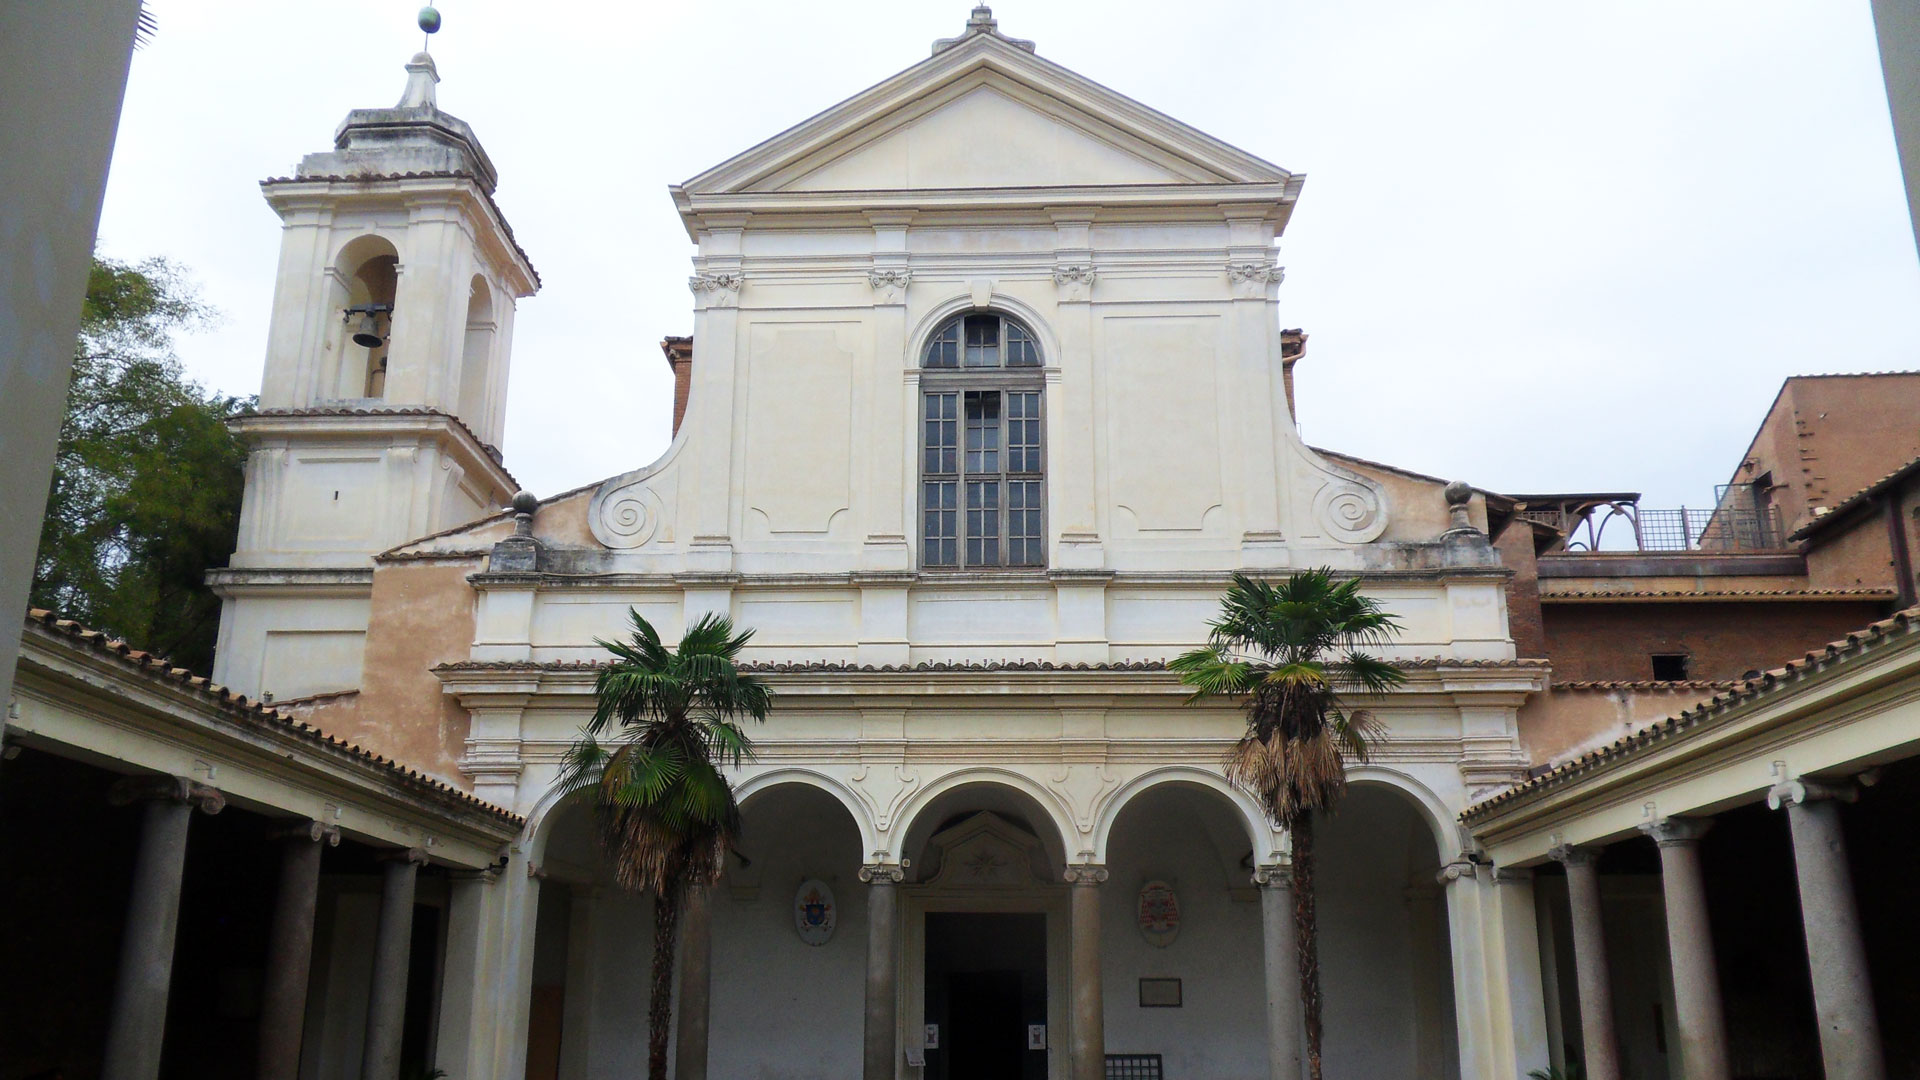 San Clemente - facade of 'modern' Roman basilica with cloisters